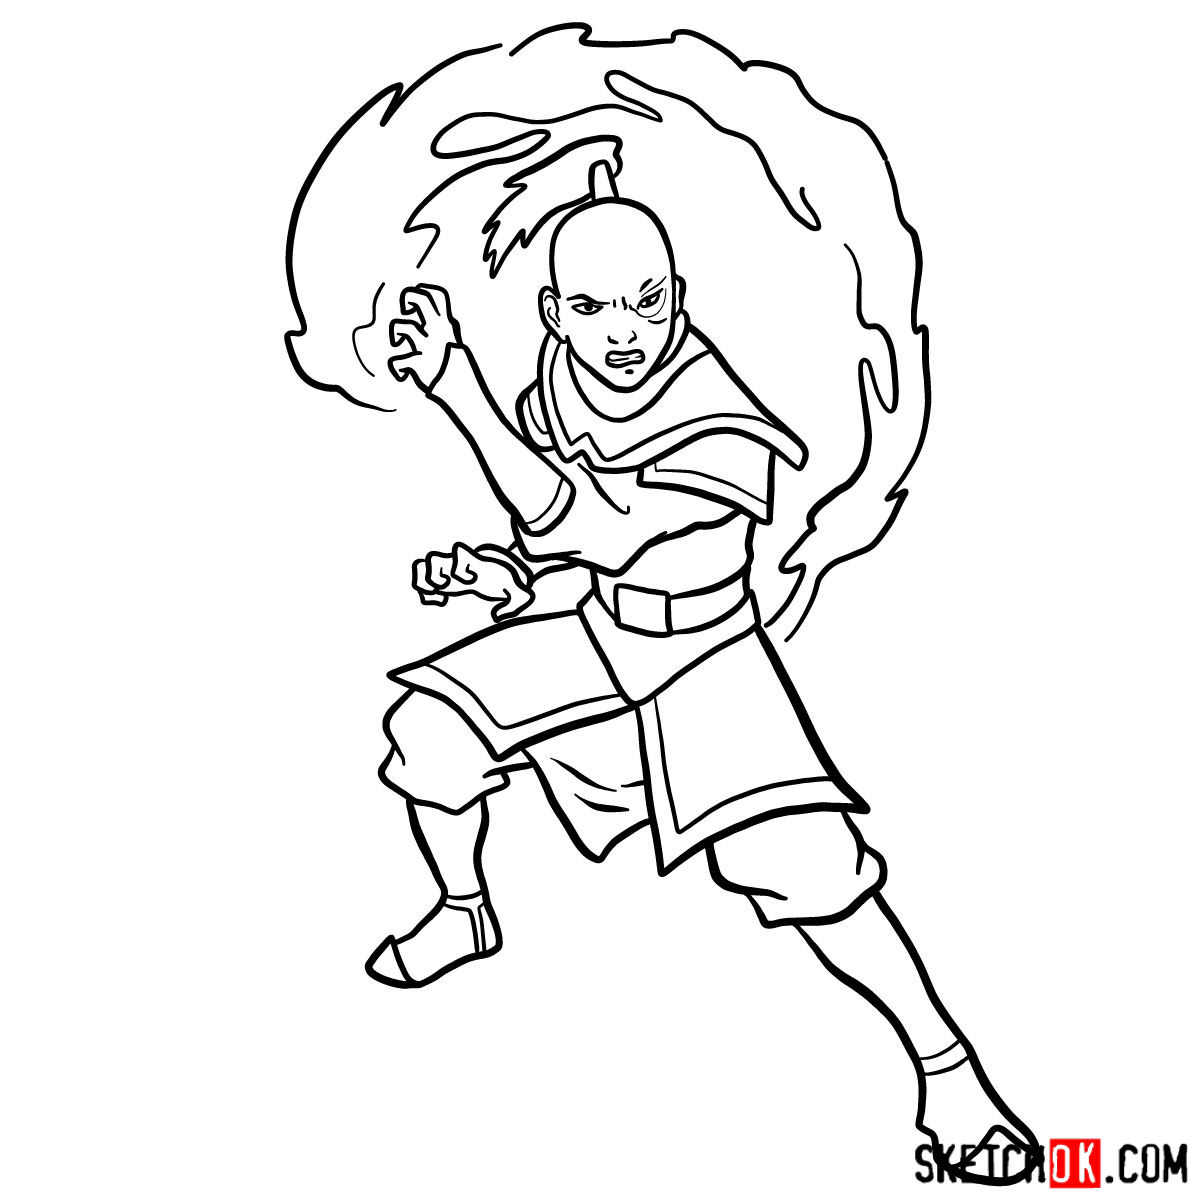 How to draw Zuko from Avatar series - step 13